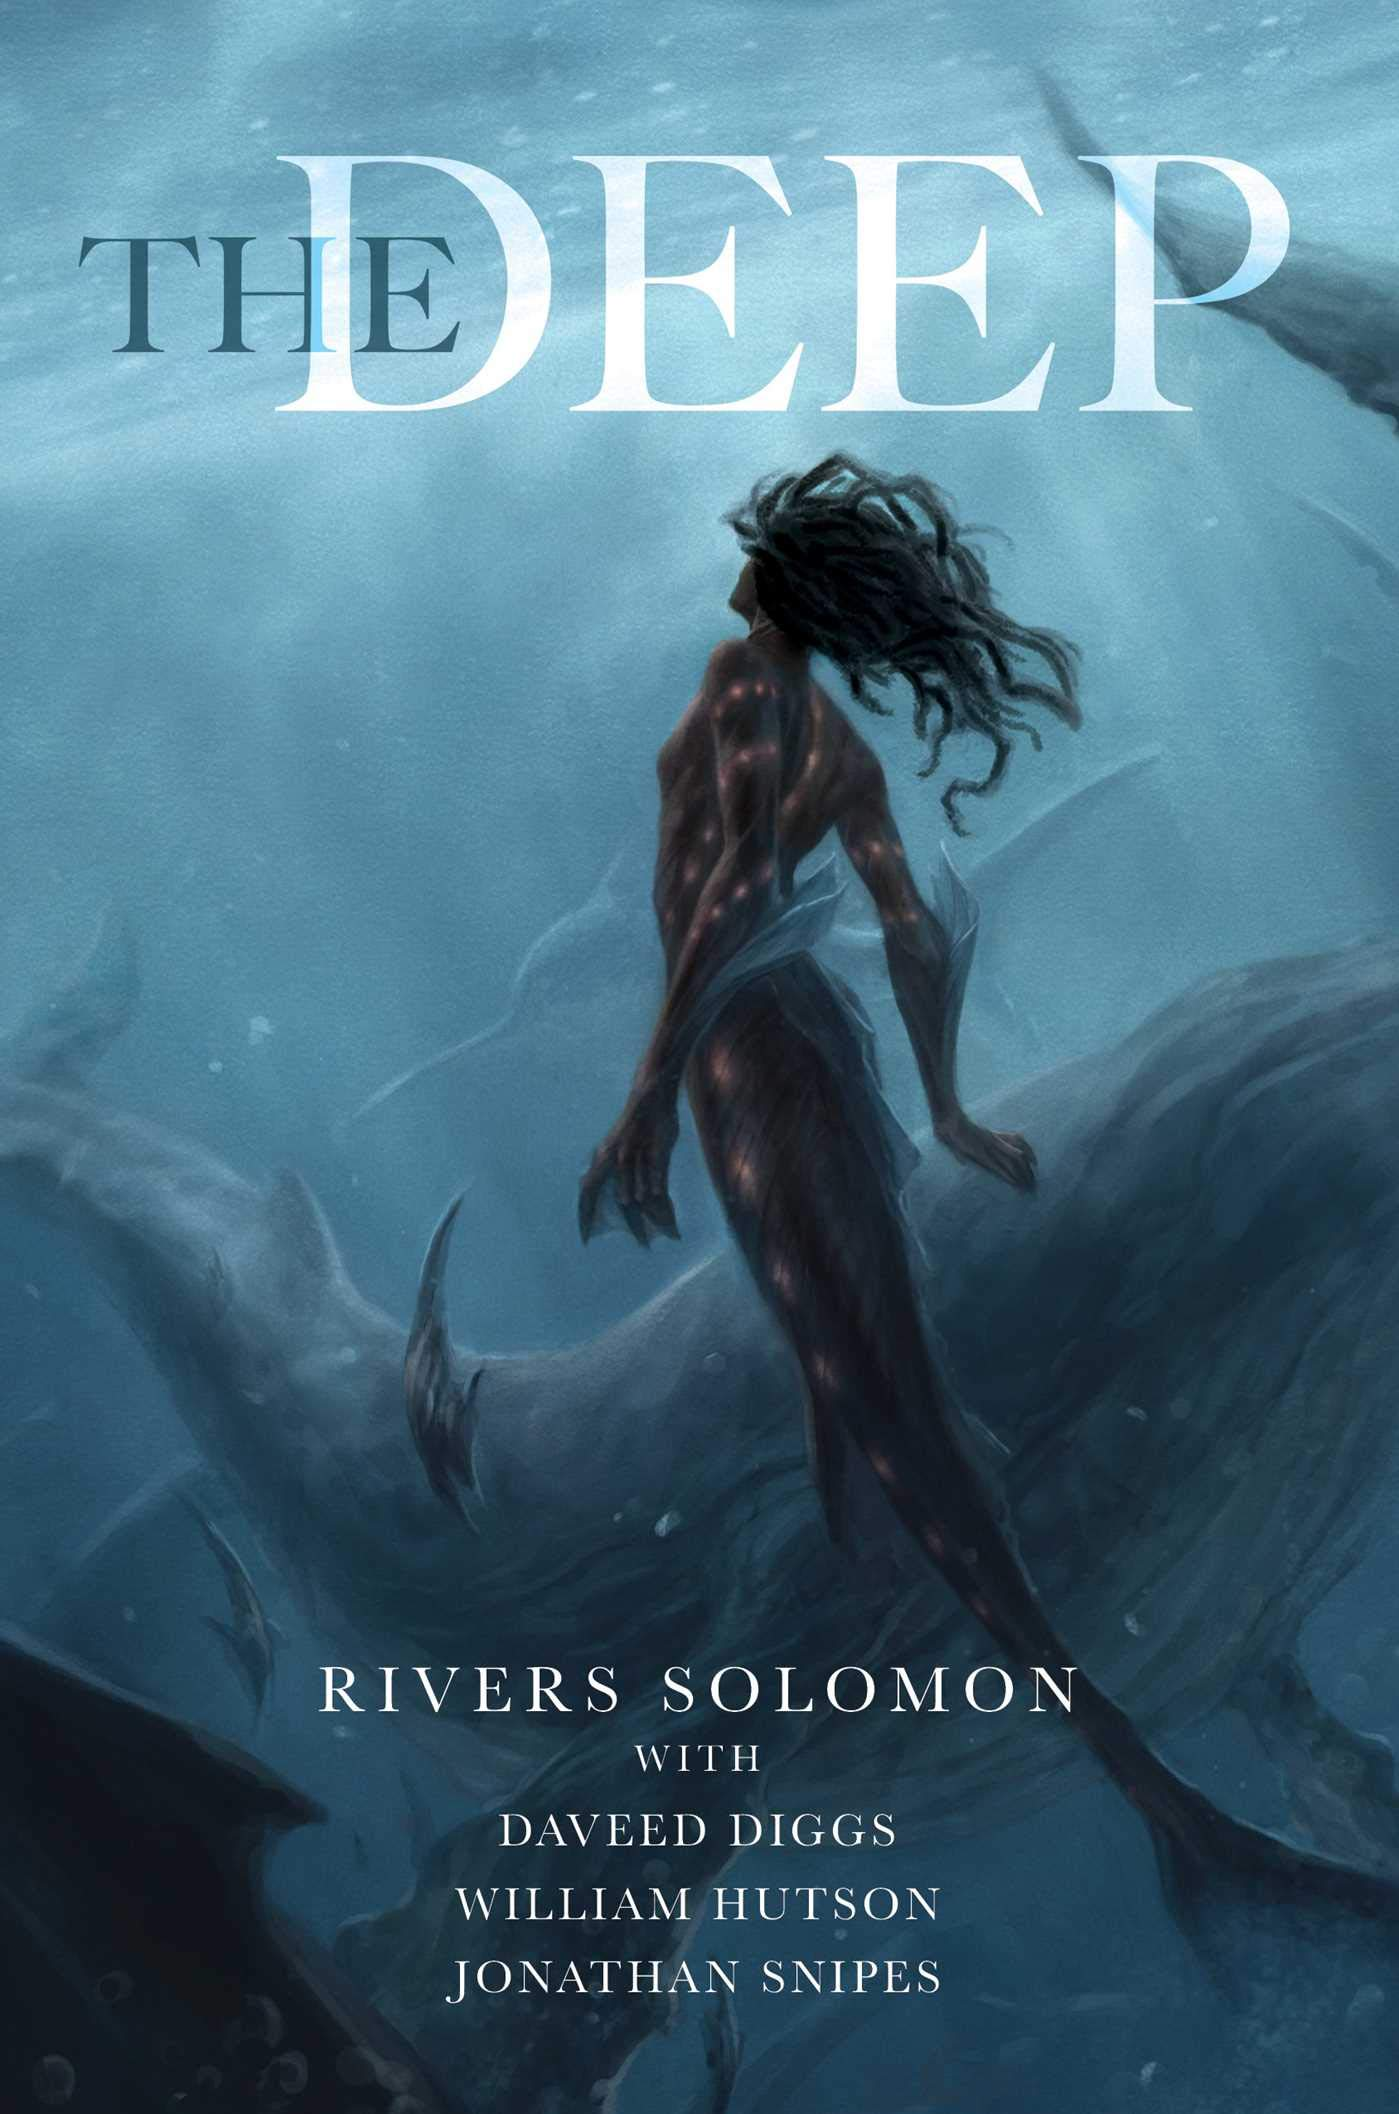 Amazon.com: The Deep (9781534439863): Solomon, Rivers, Diggs ...